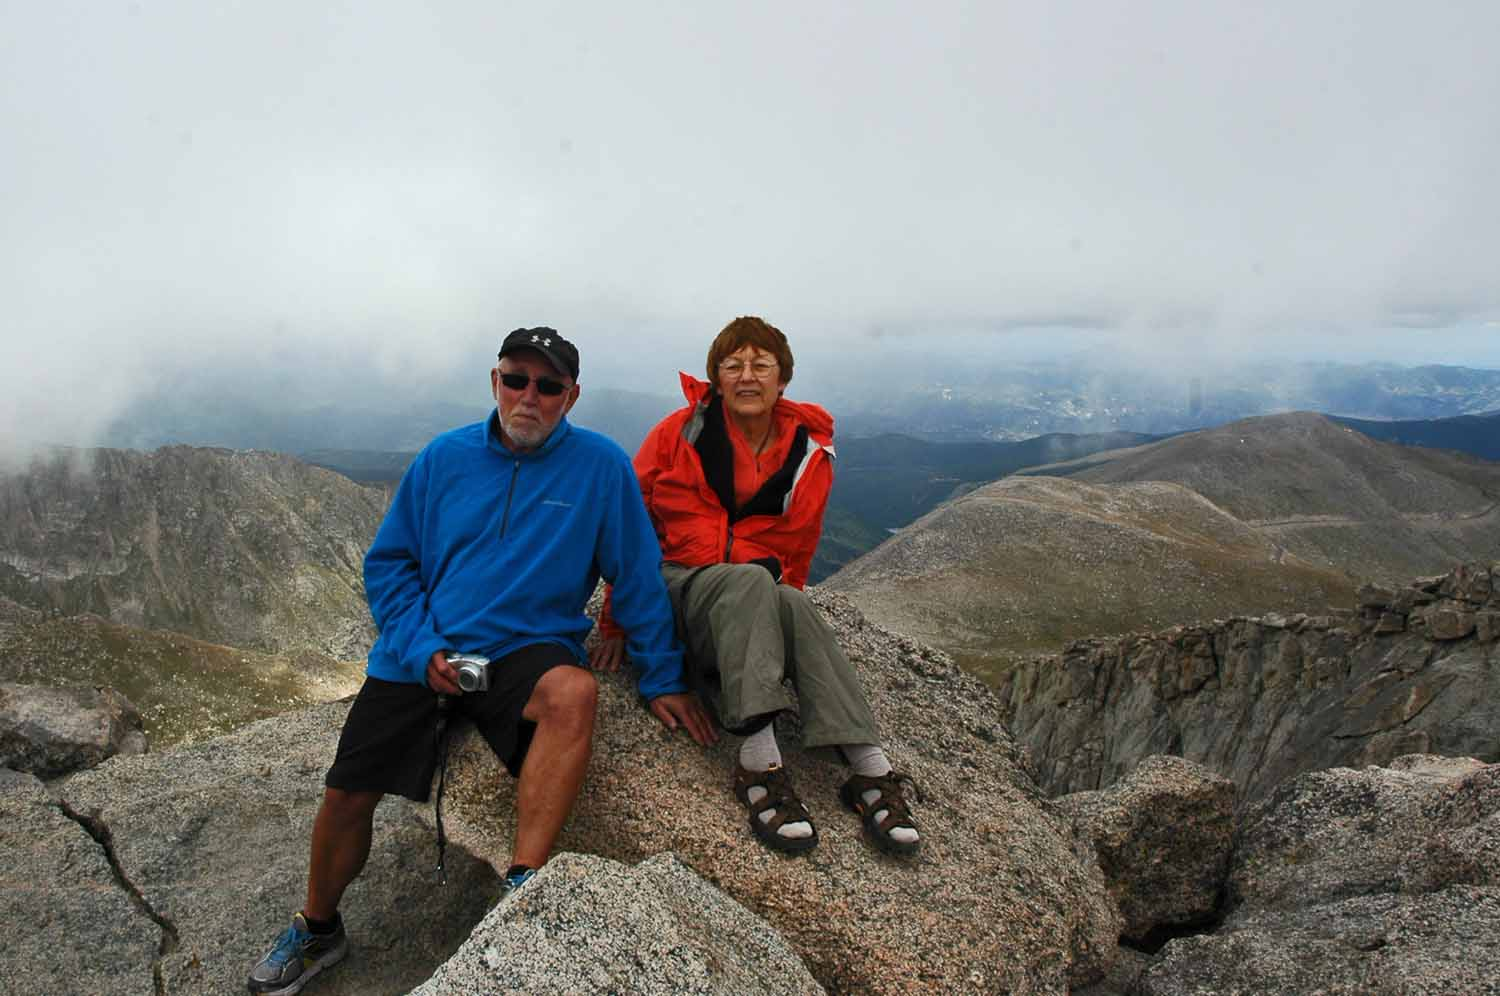 Here we are at 14,000 feet on Mt Evan, Colorado